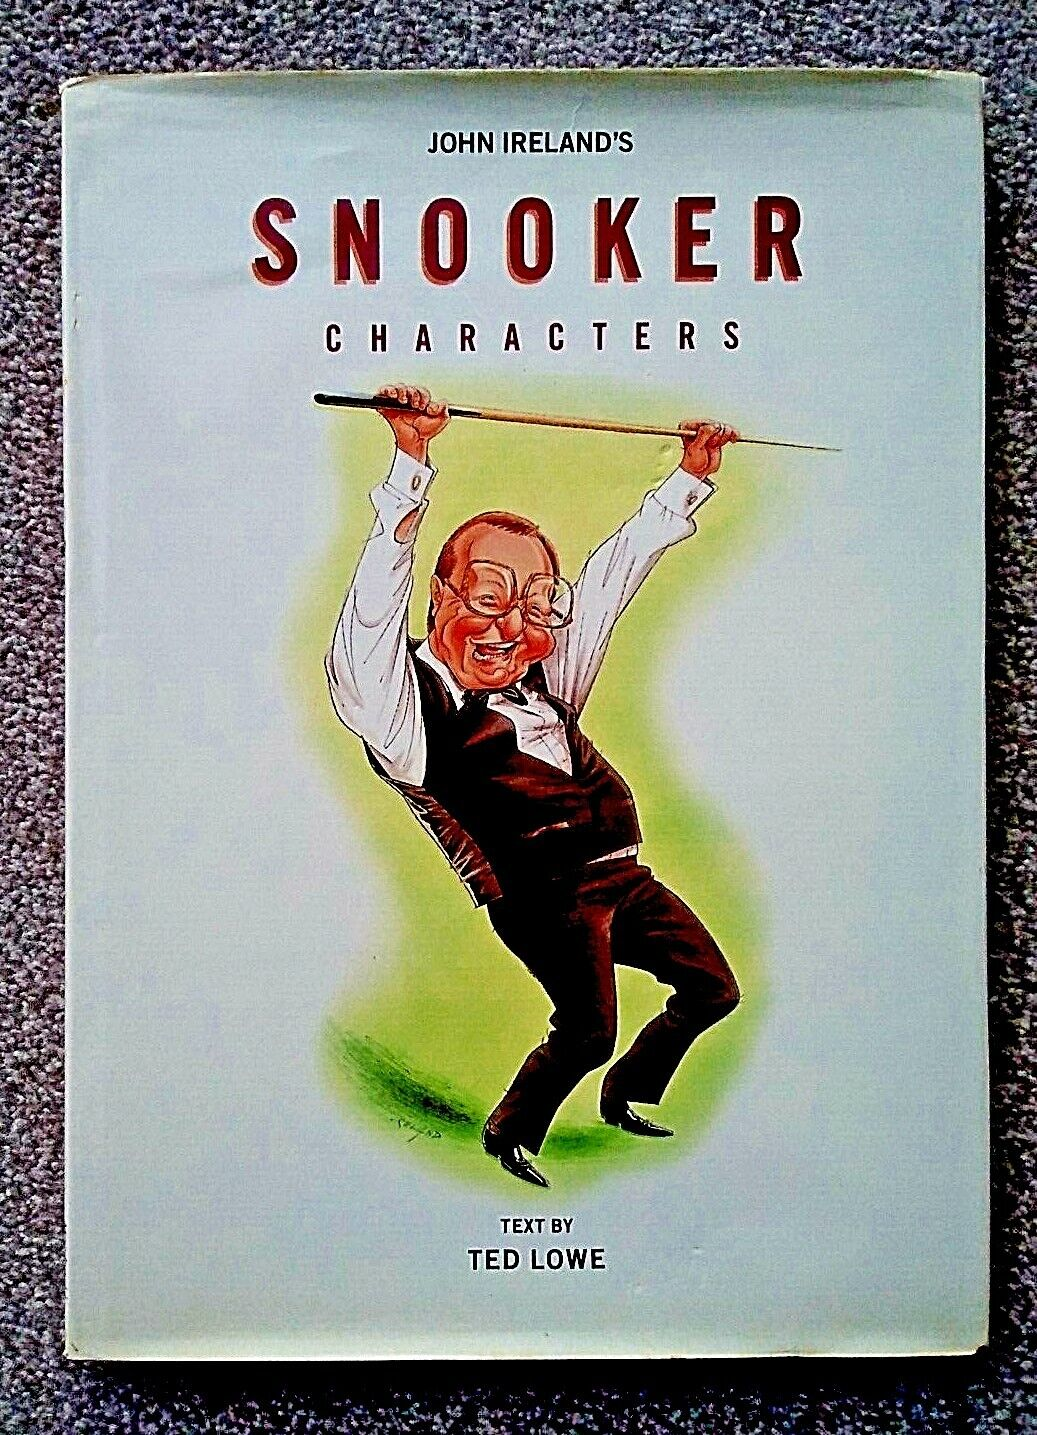 SNOOKER CHARACTERS Book by JOHN IRELAND.